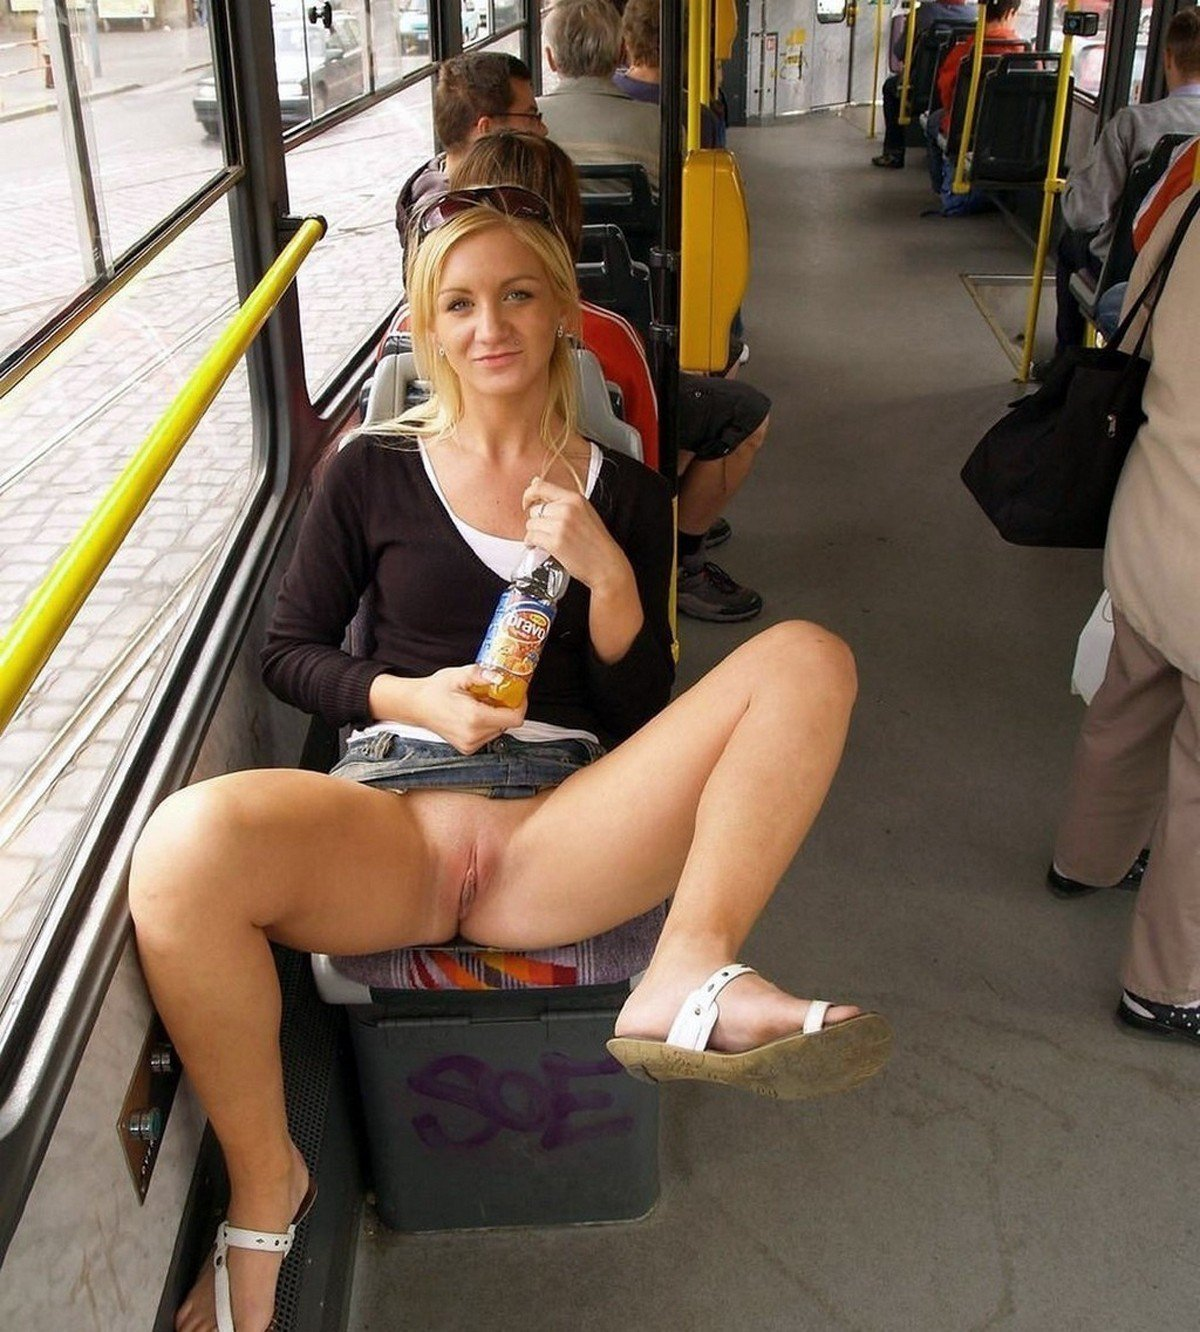 Friends Flashing In Public Porn Shaved Pussy Flashing Showing Images For Clothed Upskirt Shaved